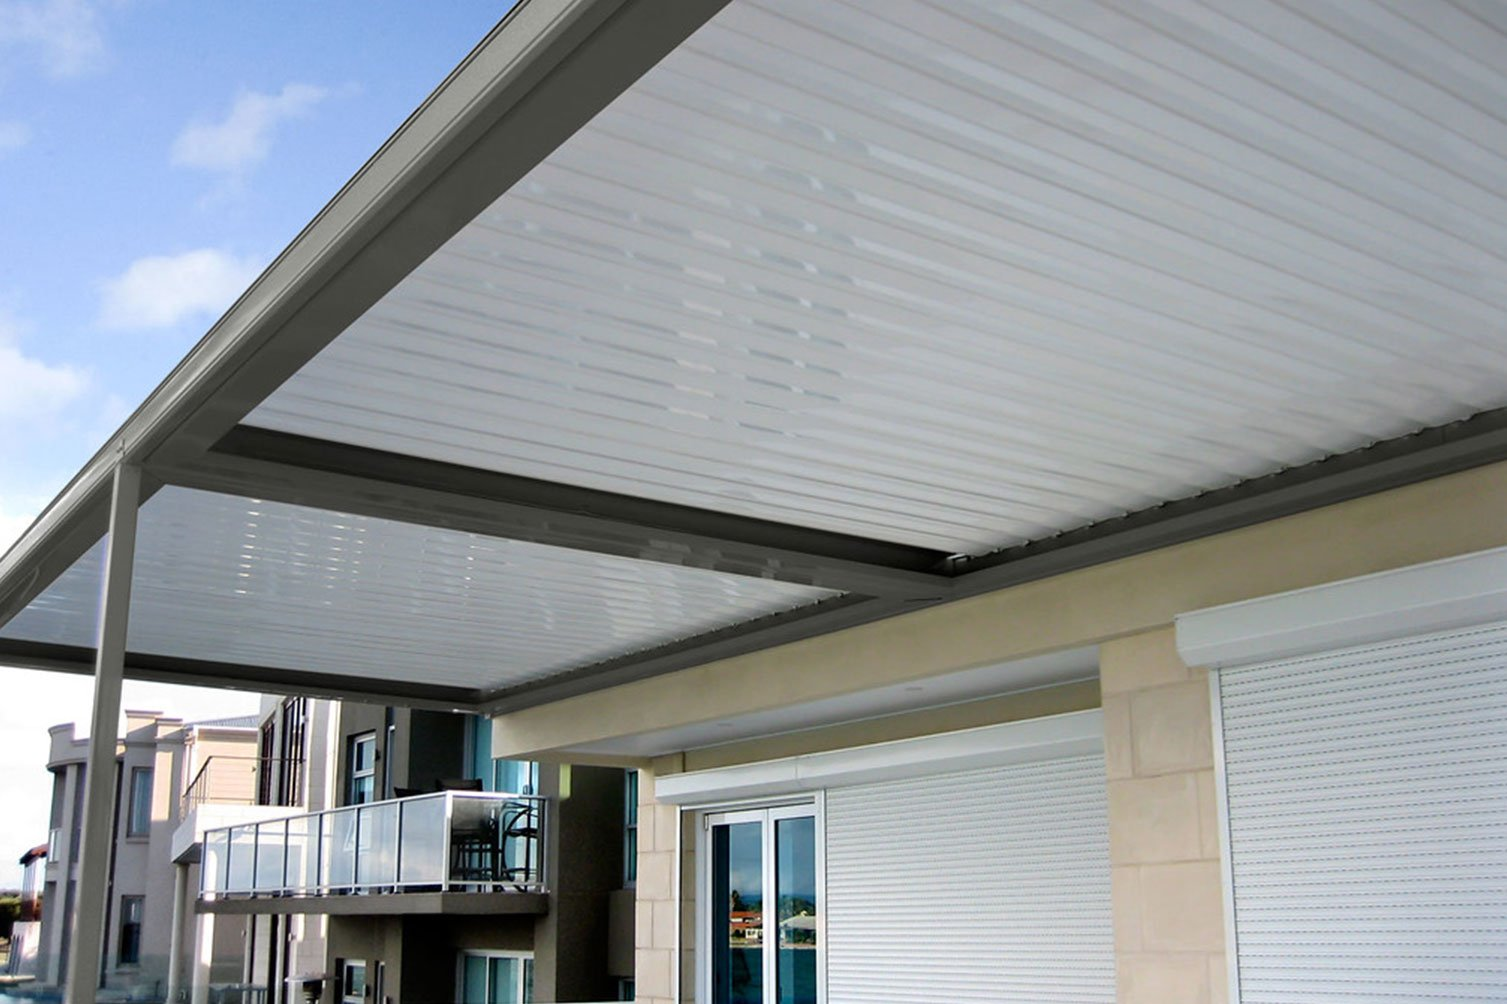 Opening sunroofs by patio builders in Tweed Heads that gives you the satisfaction and peace